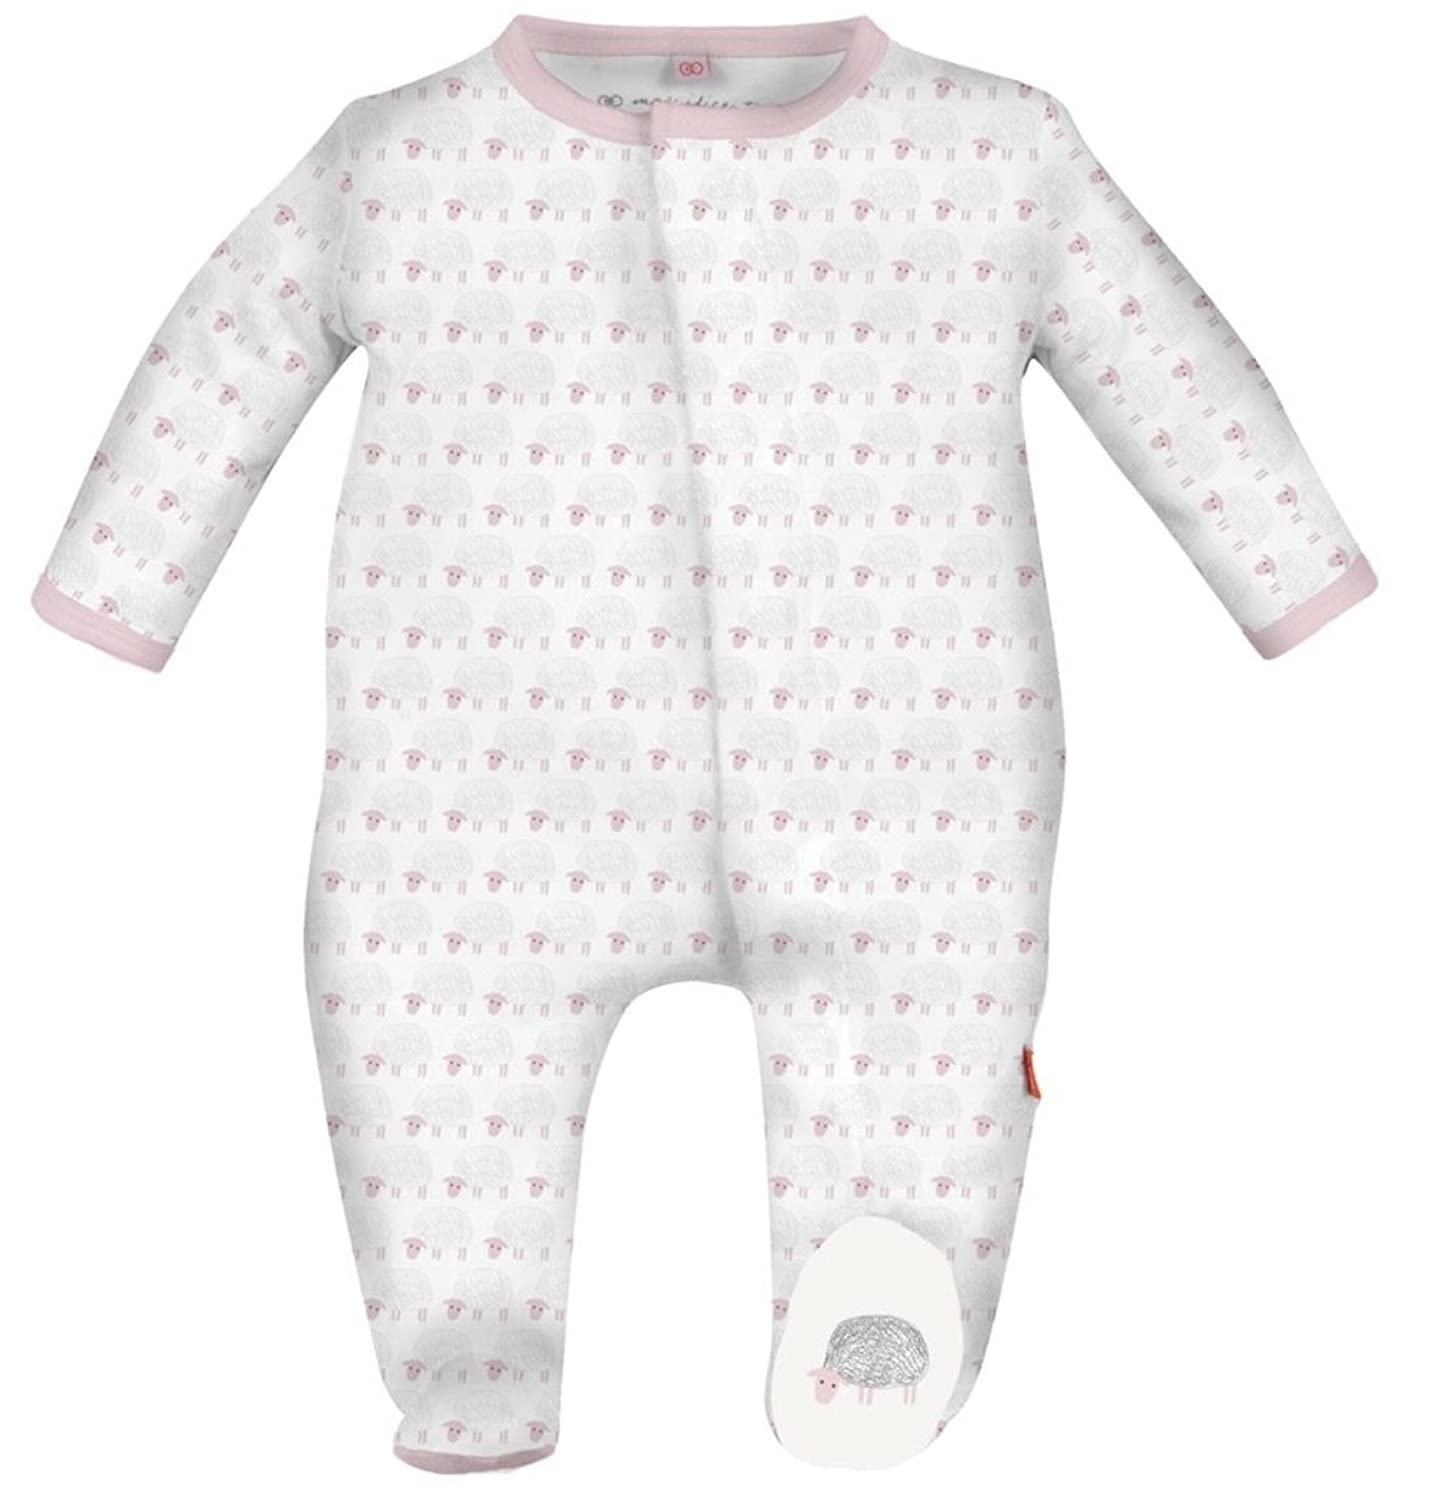 Amazon Magnificent Baby Magnetic Me Baby Footie 6 months Pink